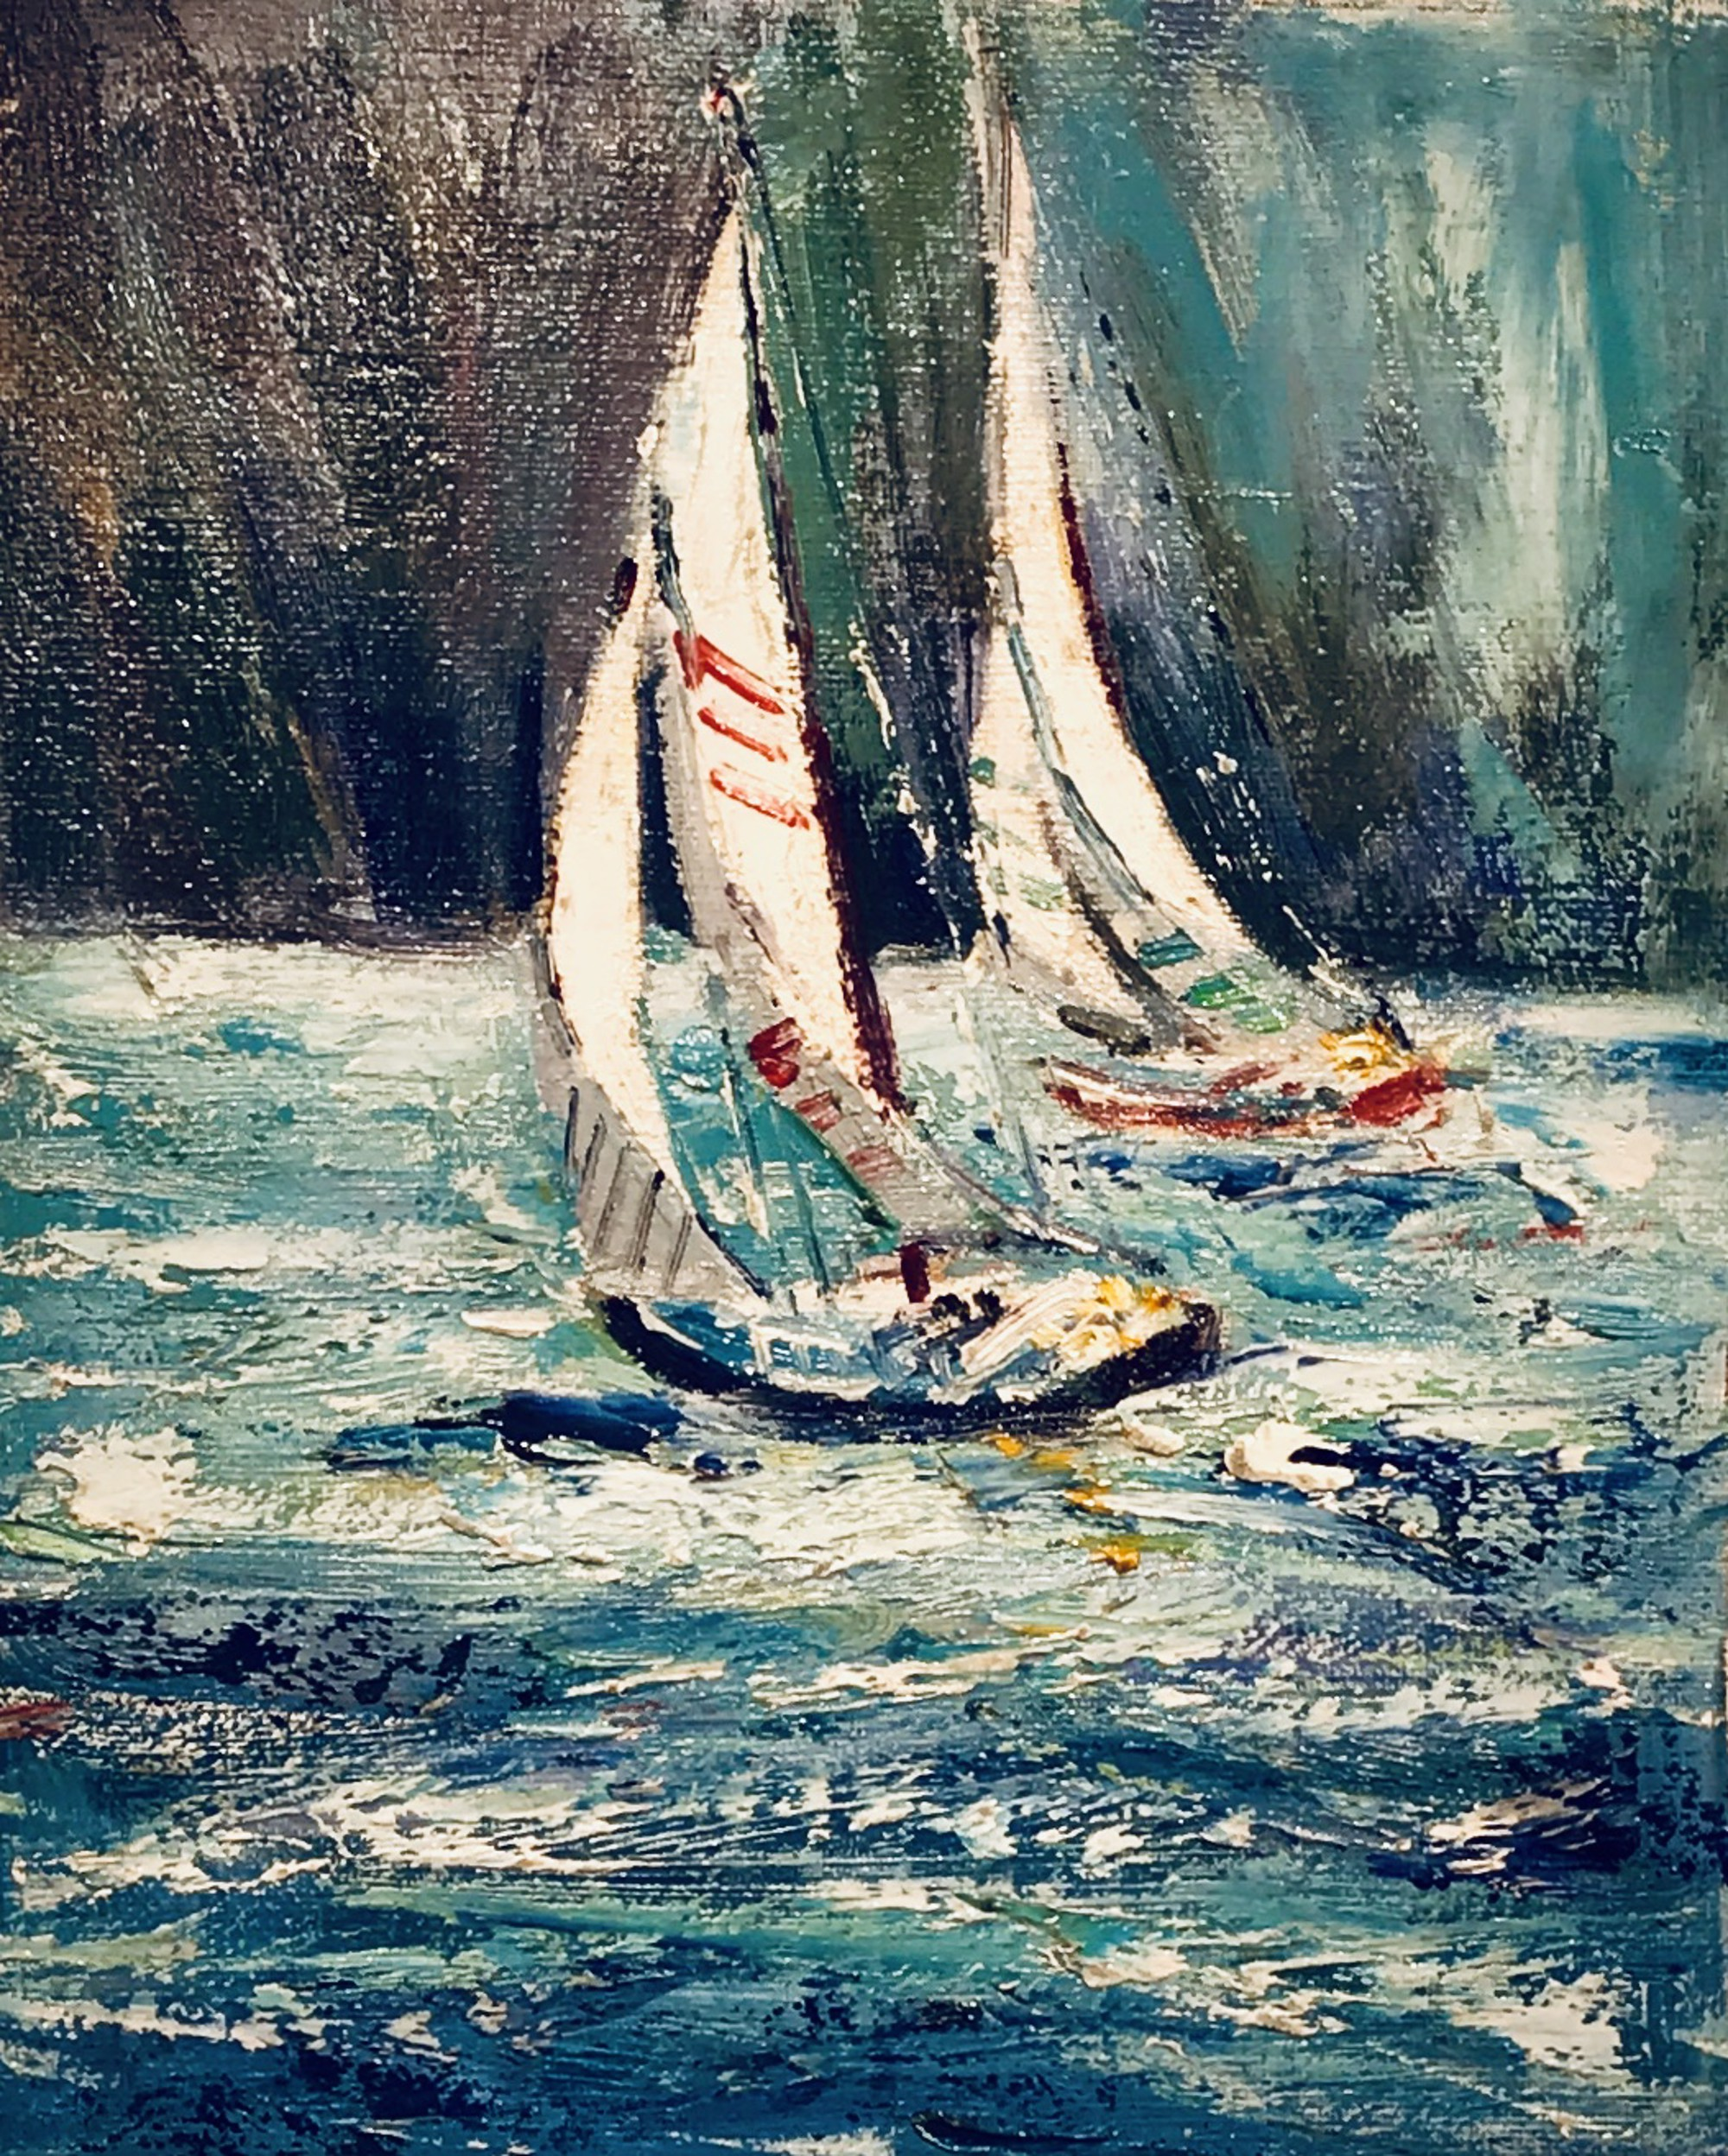 Two Sailboats Racing by VARIOUS WORKS